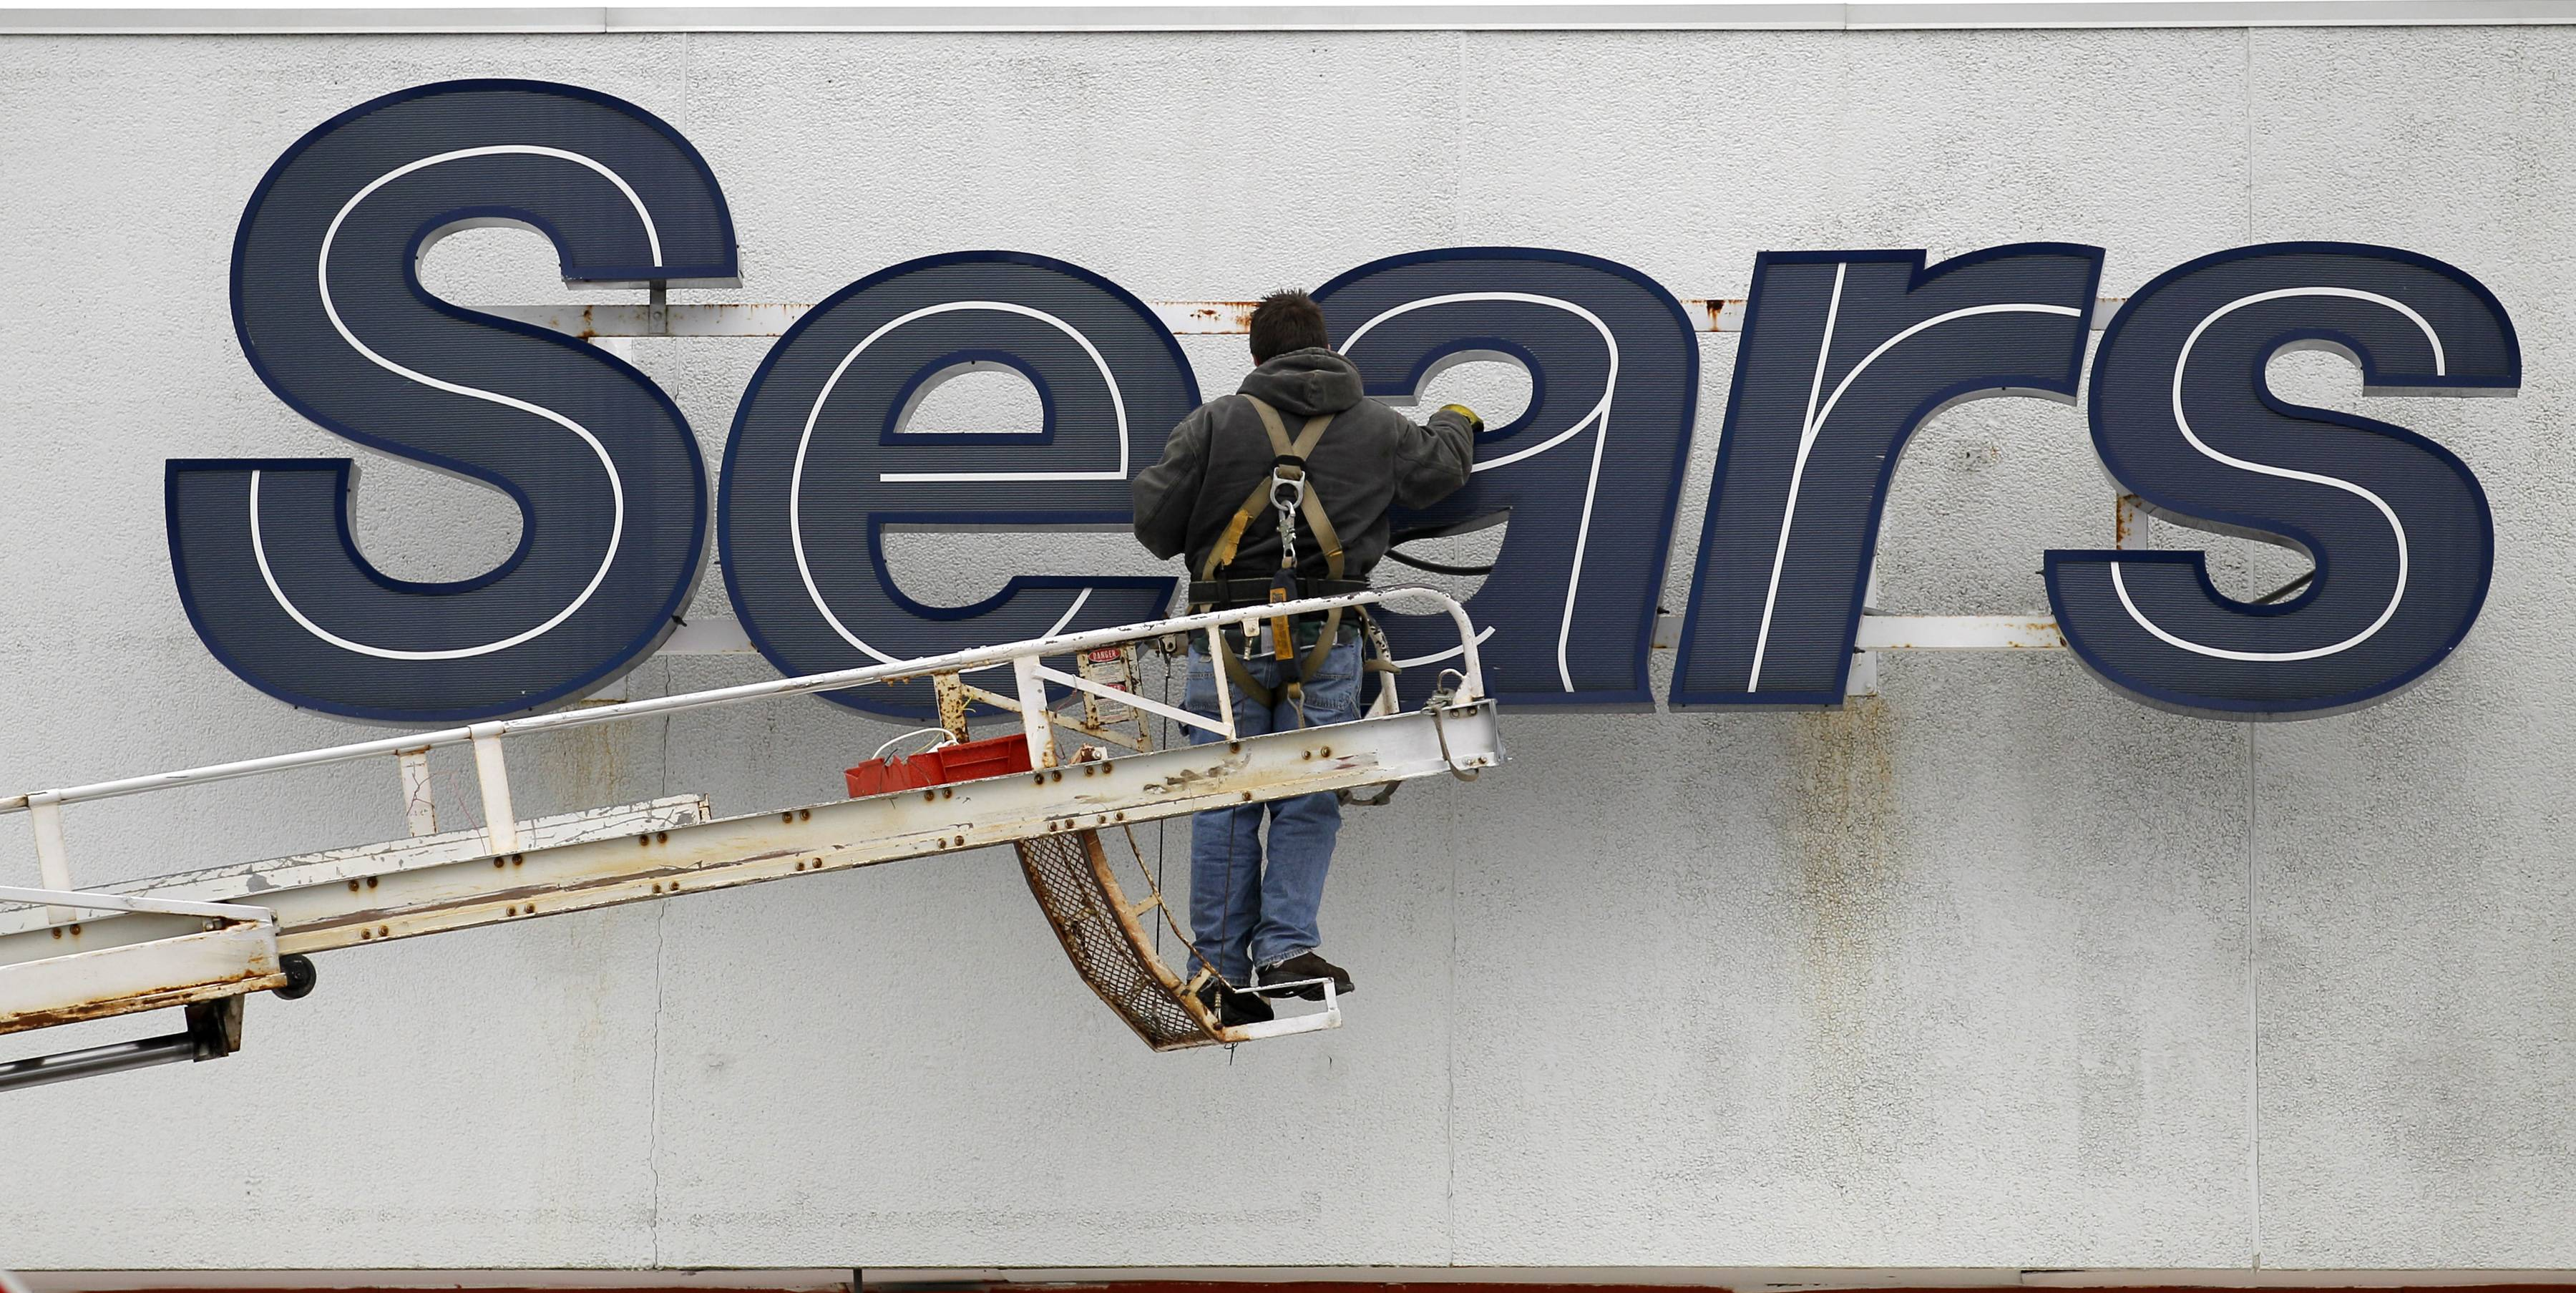 Hoffman Estates-based Sears Holdings Corp., which operates Kmart and Sears, has been struggling for years as it faces increasingly stiff competition from Wal-Mart, Target and Home Depot. Critics say Sears has failed to update shabby and tired stores.